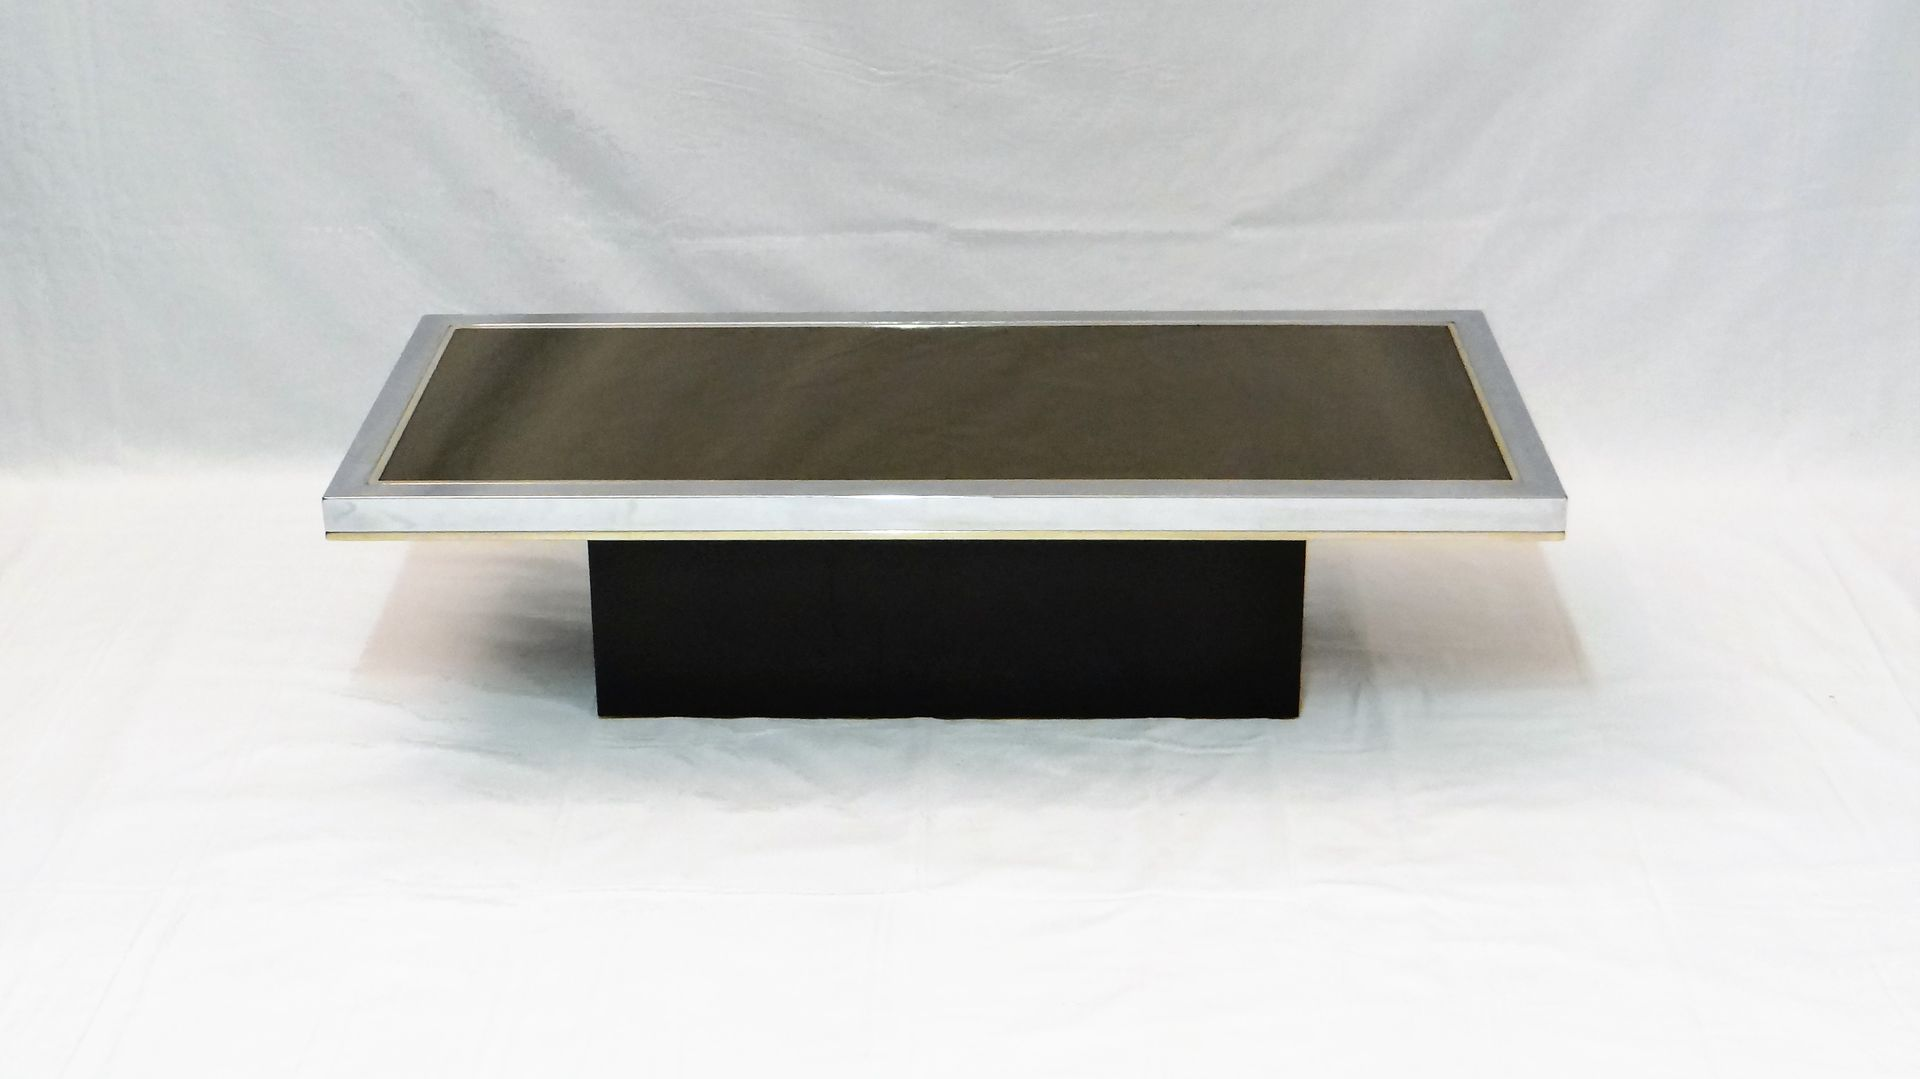 Vintage Mirrored Coffee Table By Roger Vanhevel, 1970s 6. $947.00. Price  Per Piece